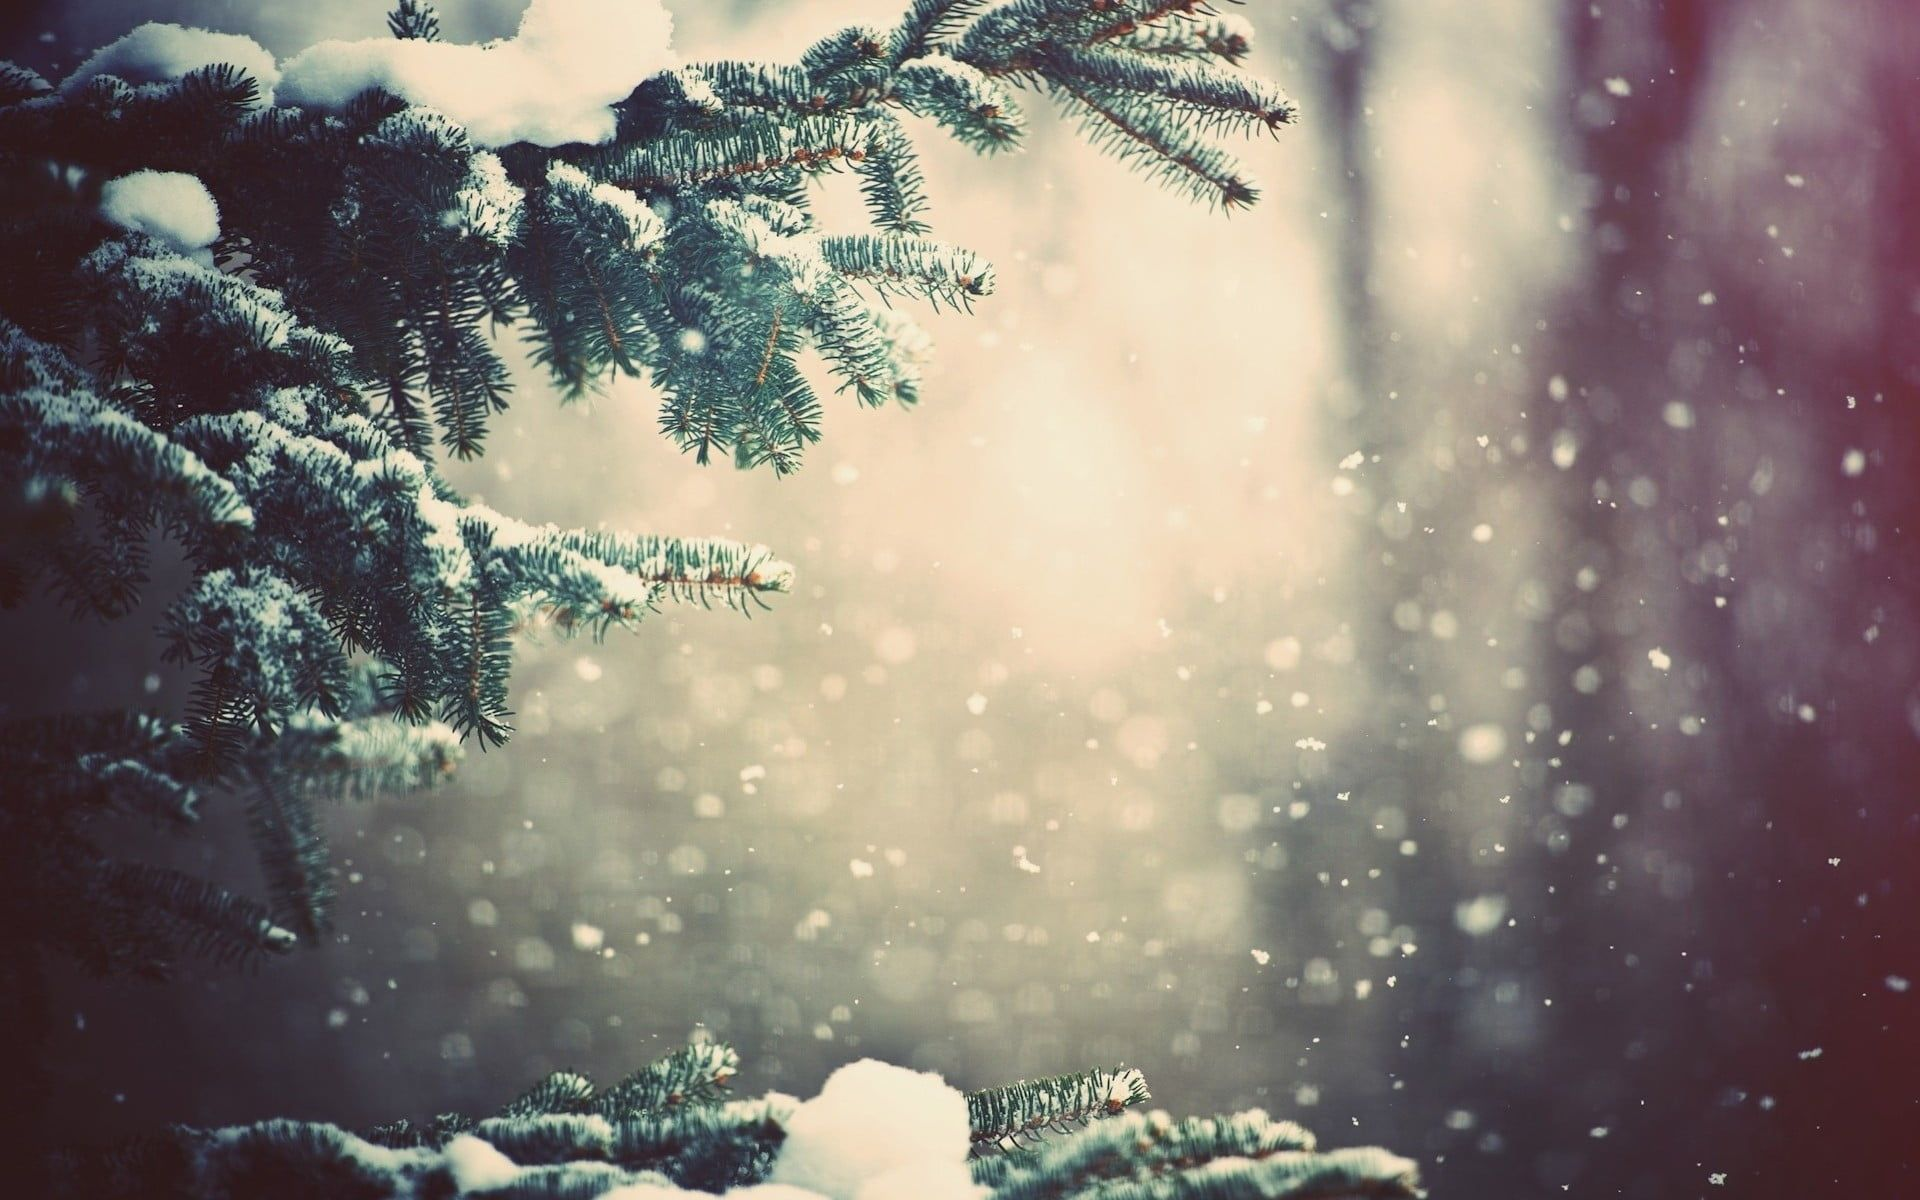 Green Tree Frozened Trees Close Up Photography Winter Snow Trees Depth Of Field Bokeh Plants Branch 1080p Wal Winter Wonder Winter Scenes Winter Magic